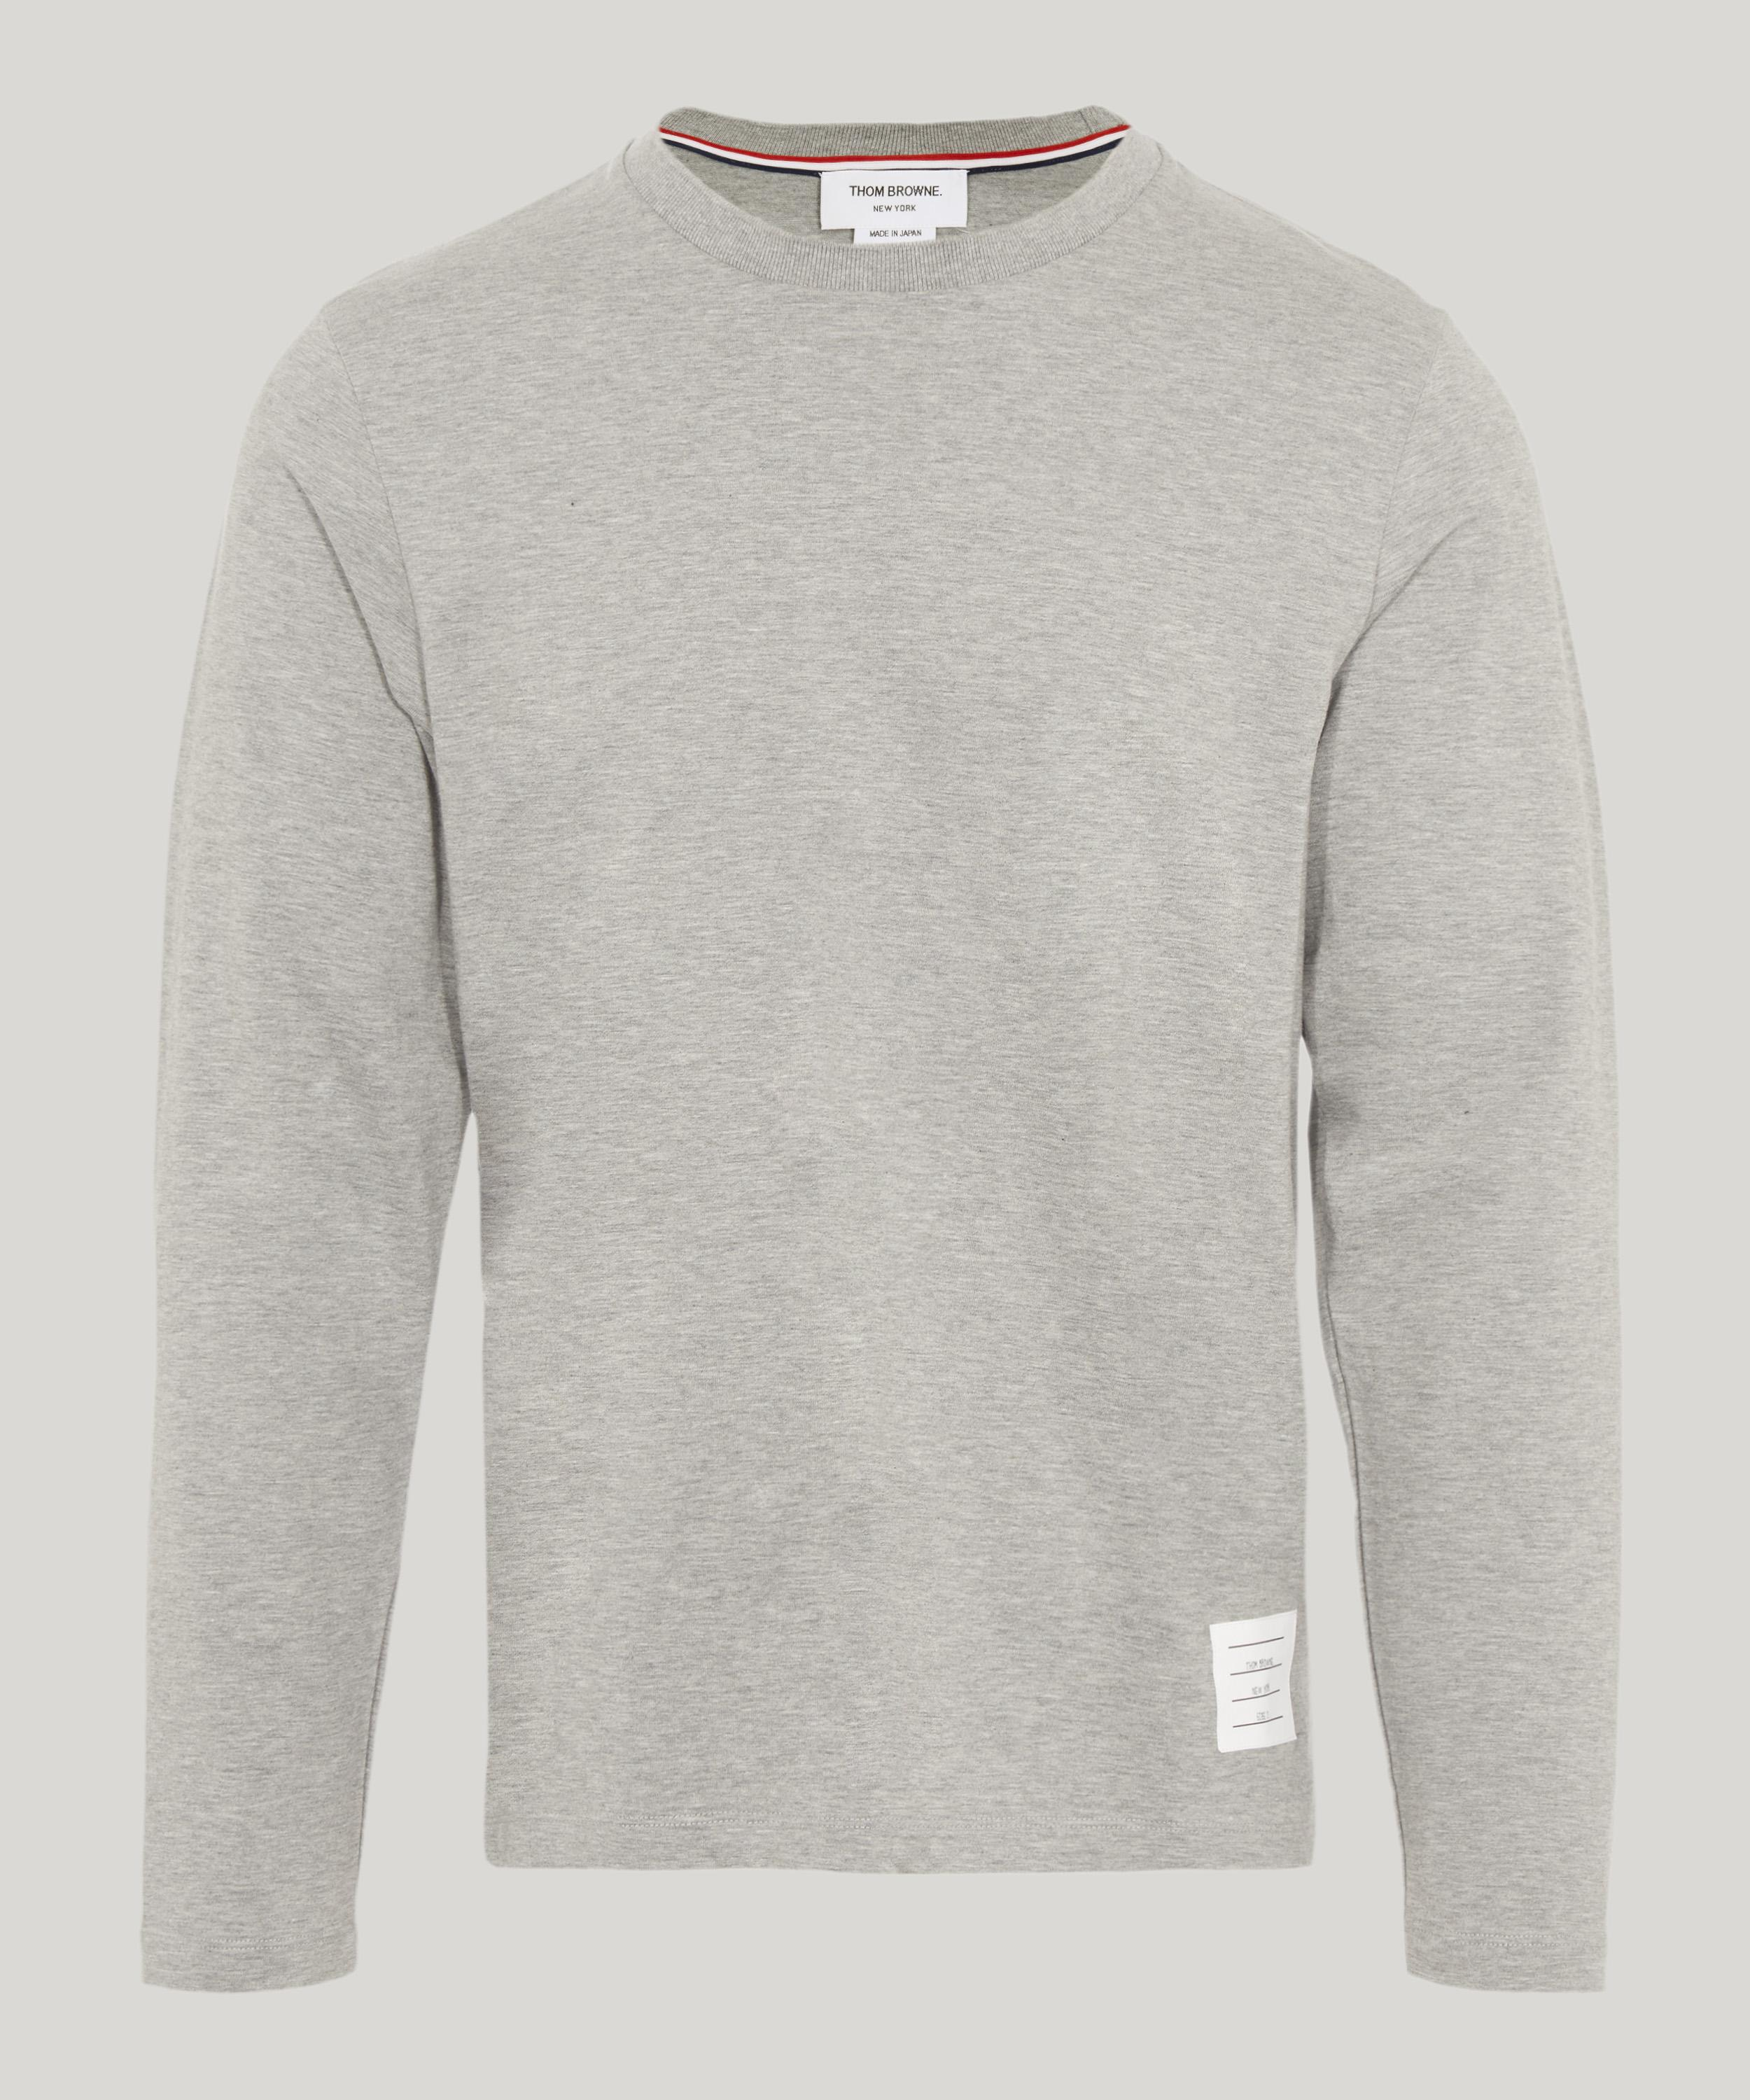 a015155564b4 Thom Browne Relaxed Fit Long Sleeve Jersey T-shirt in Gray for Men ...